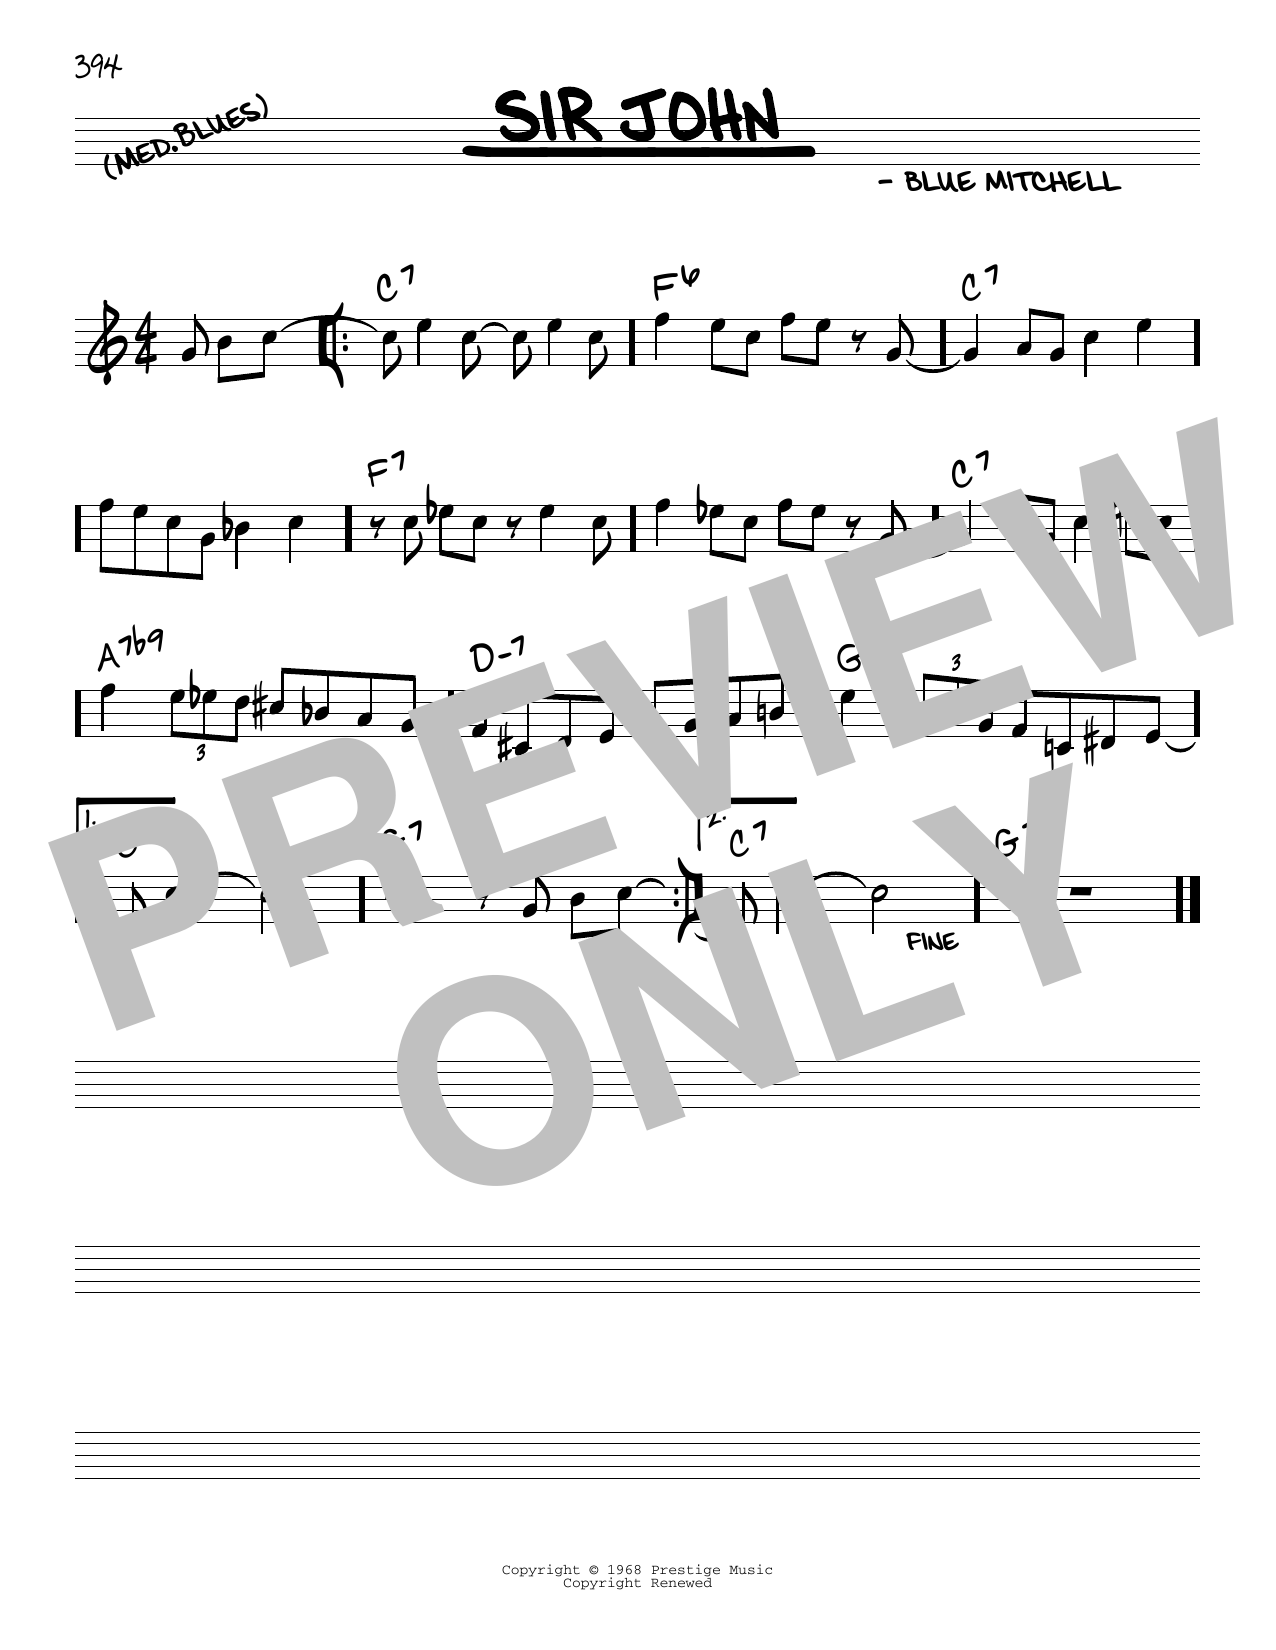 Blue Mitchell Sir John sheet music notes and chords. Download Printable PDF.